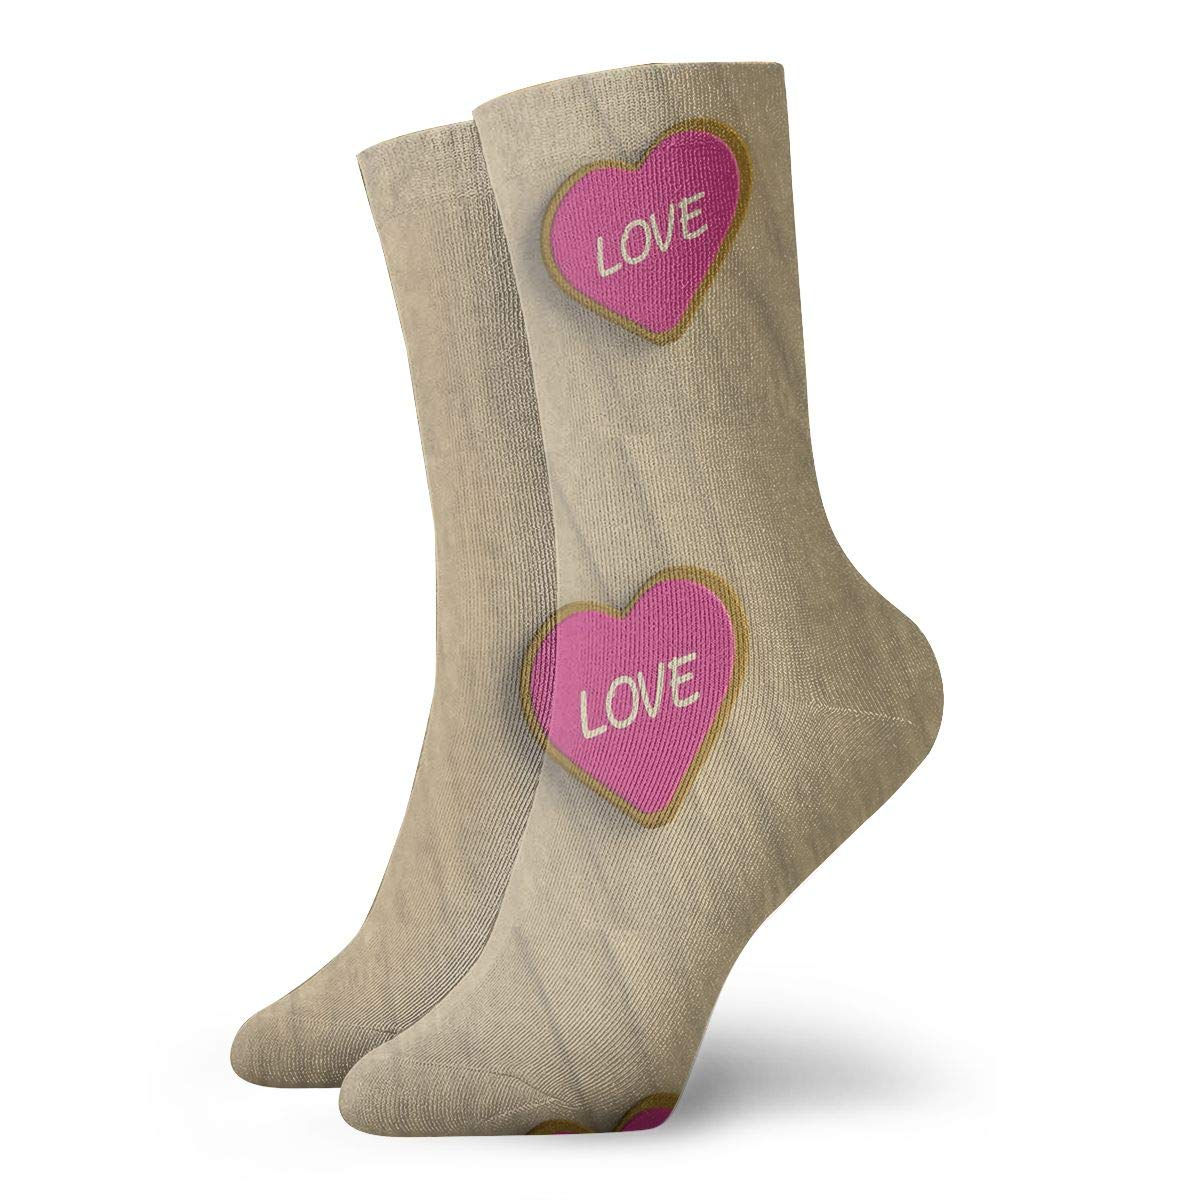 Isolated Valentines Day Cookie Fashion Dress Socks Short Socks Leisure Travel 11.8 Inch